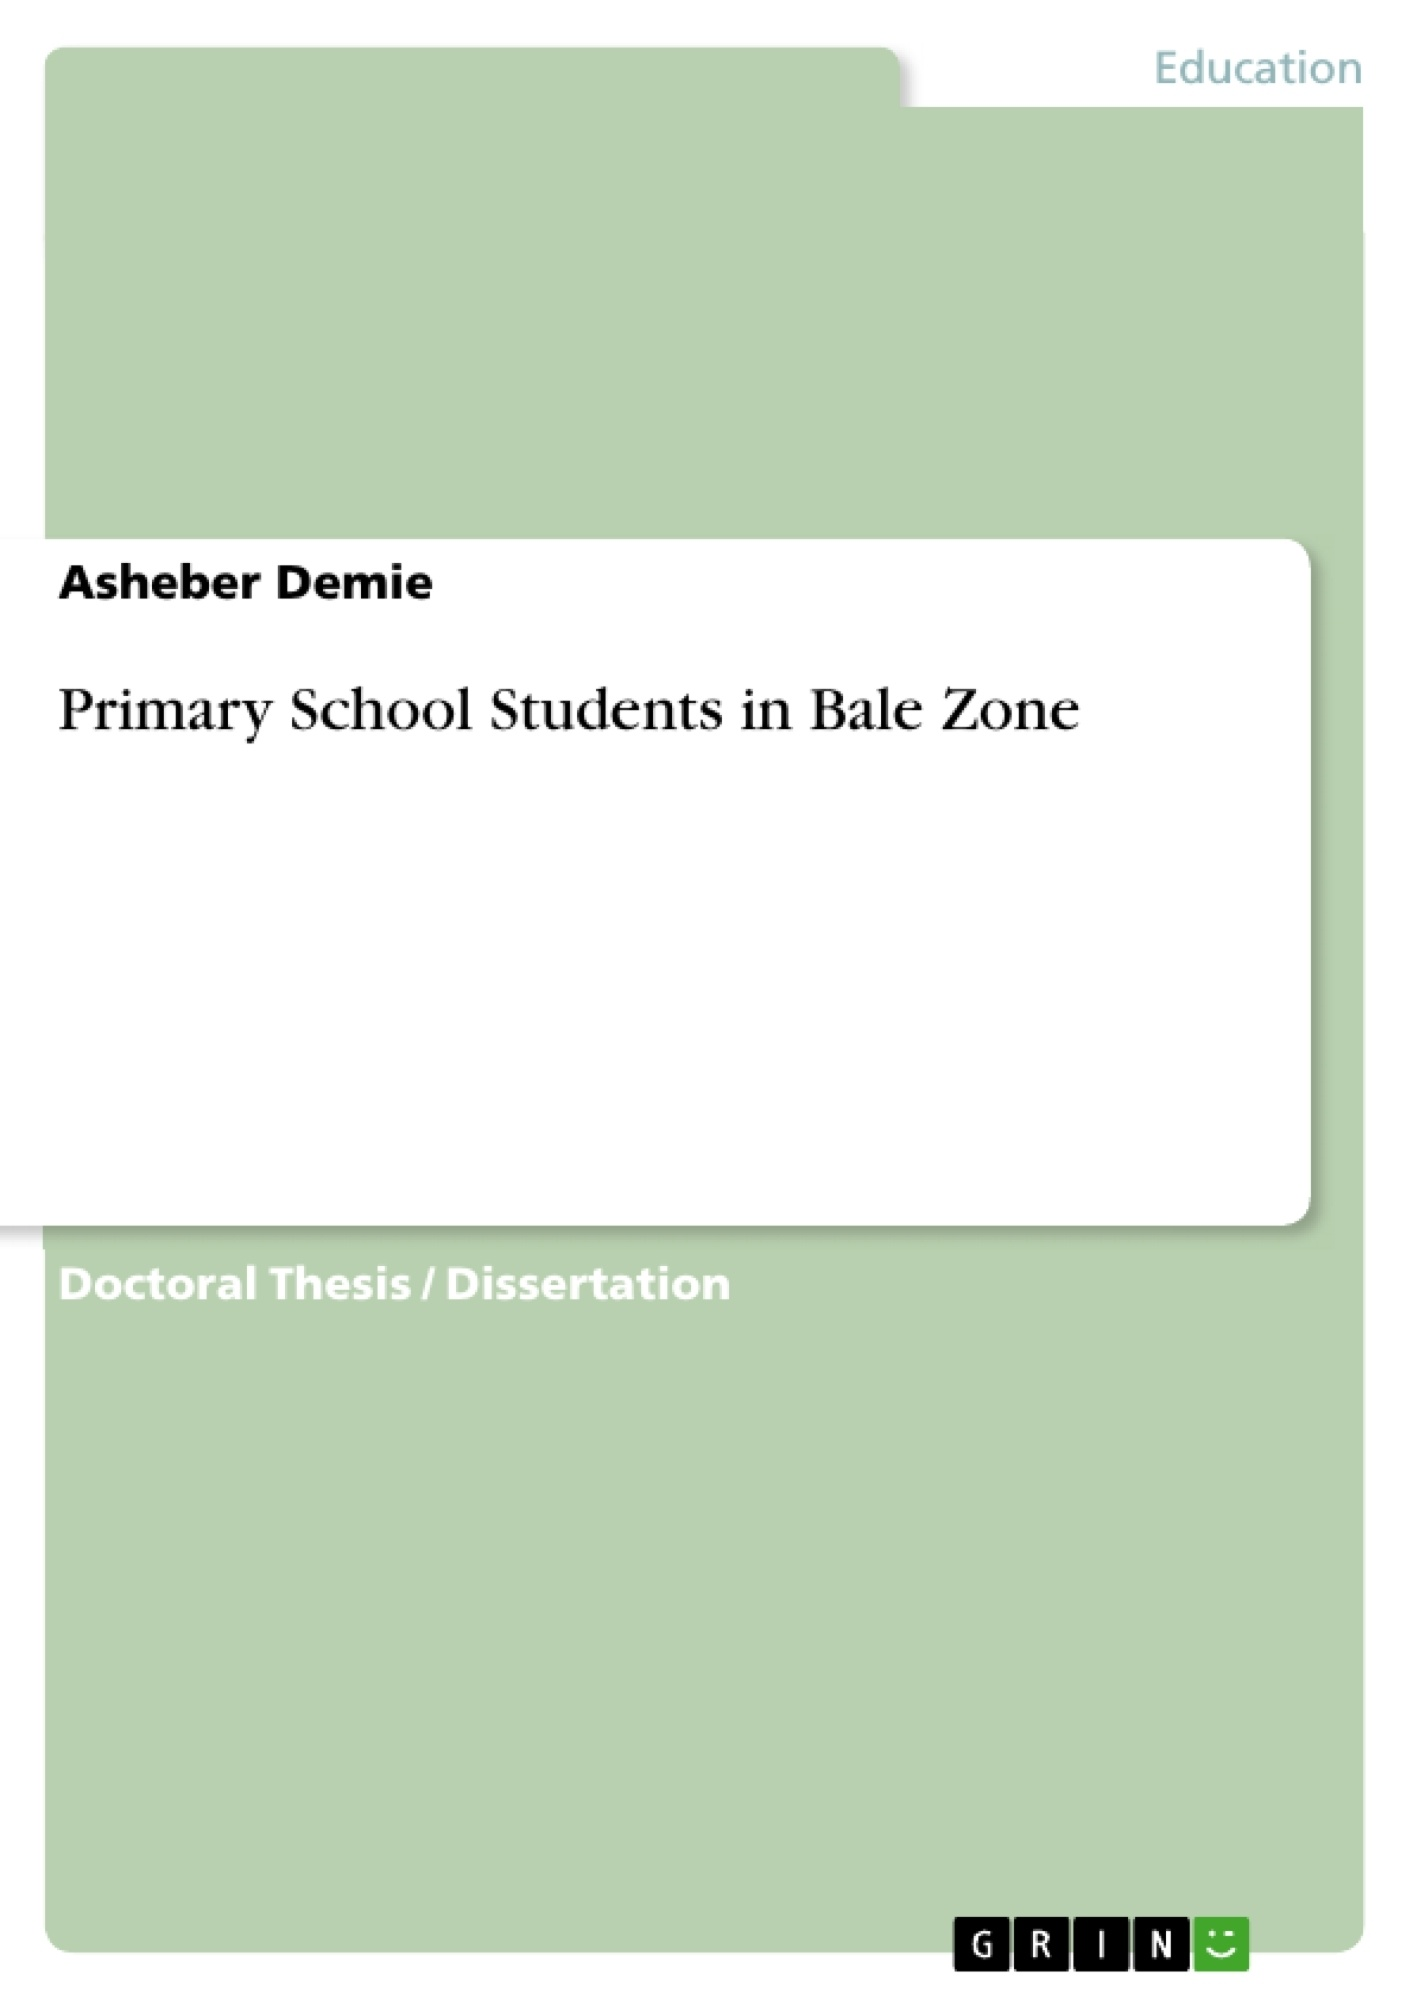 Title: Primary School Students in Bale Zone